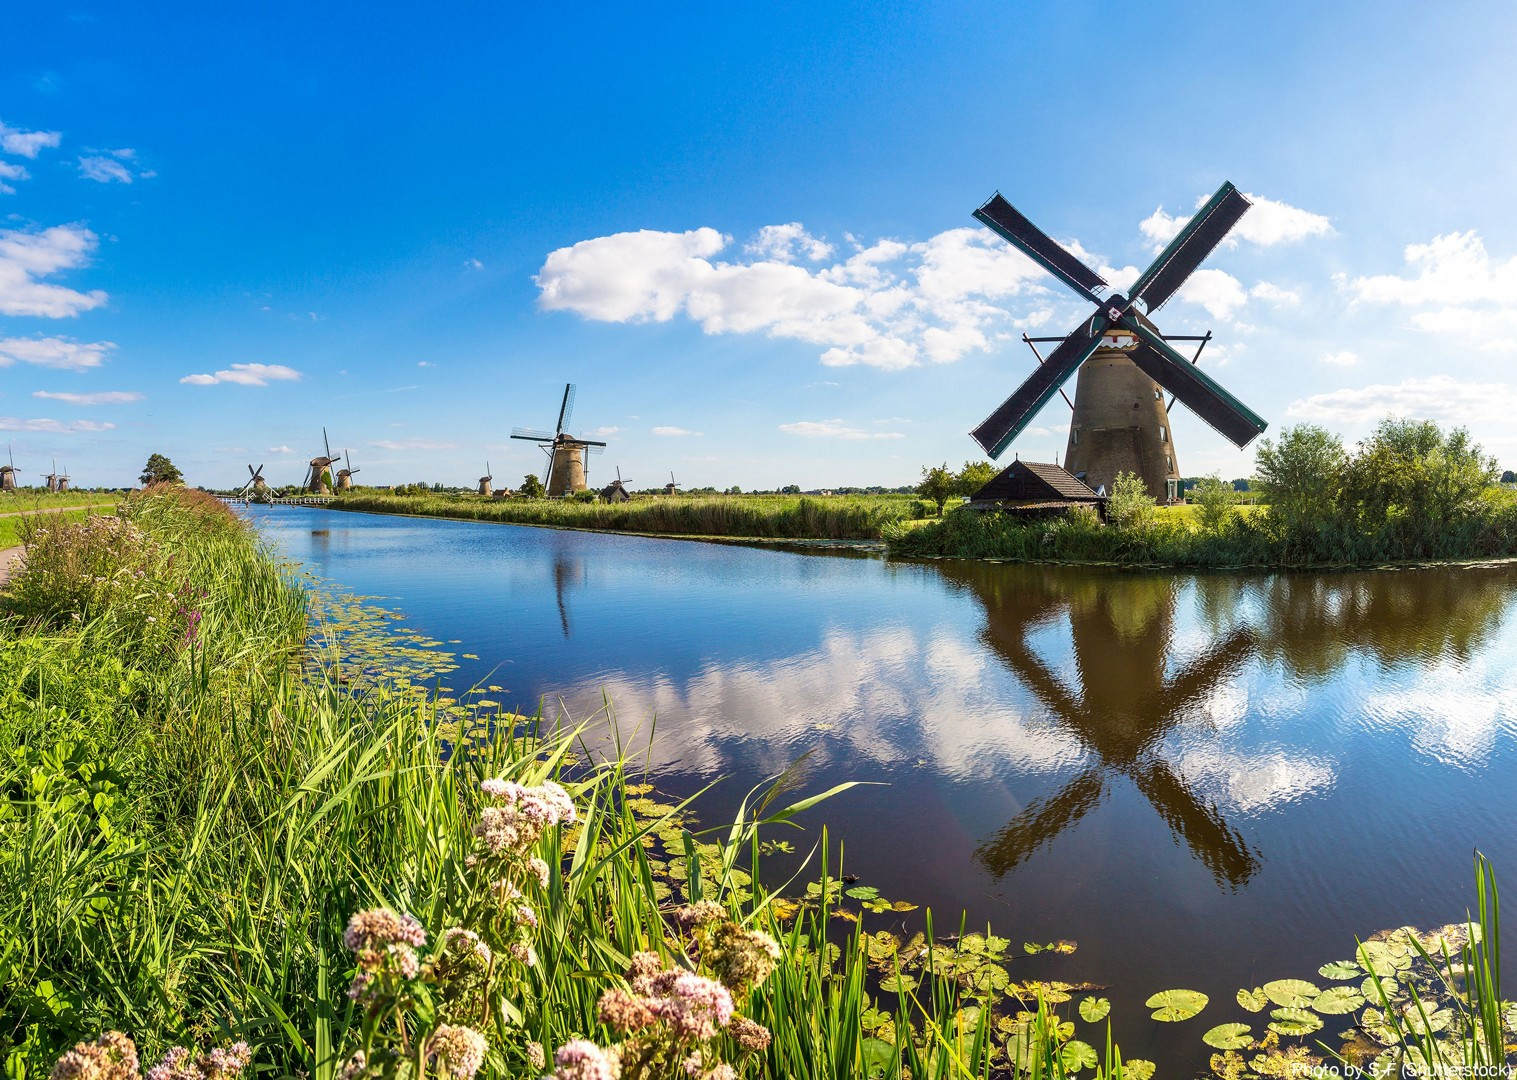 exploring-the-kinderdijk-windmills-and-canal-by-bike-barge-holiday.jpg - Holland - Green Heart - Bike and Barge Holiday - Leisure Cycling